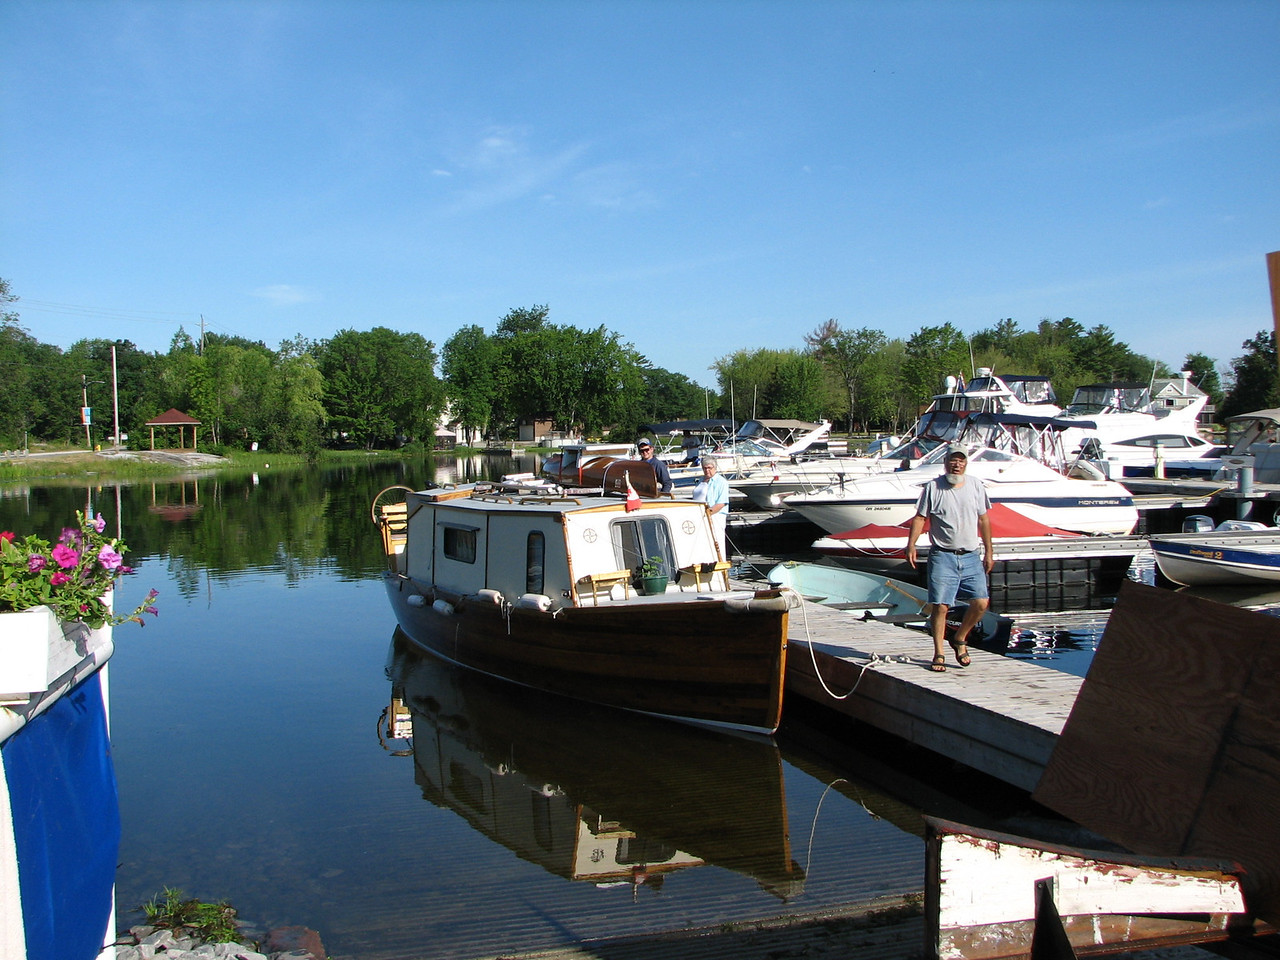 The boat  has launched at last  - at Driftwood Marina in Port Sevron, Ontario.